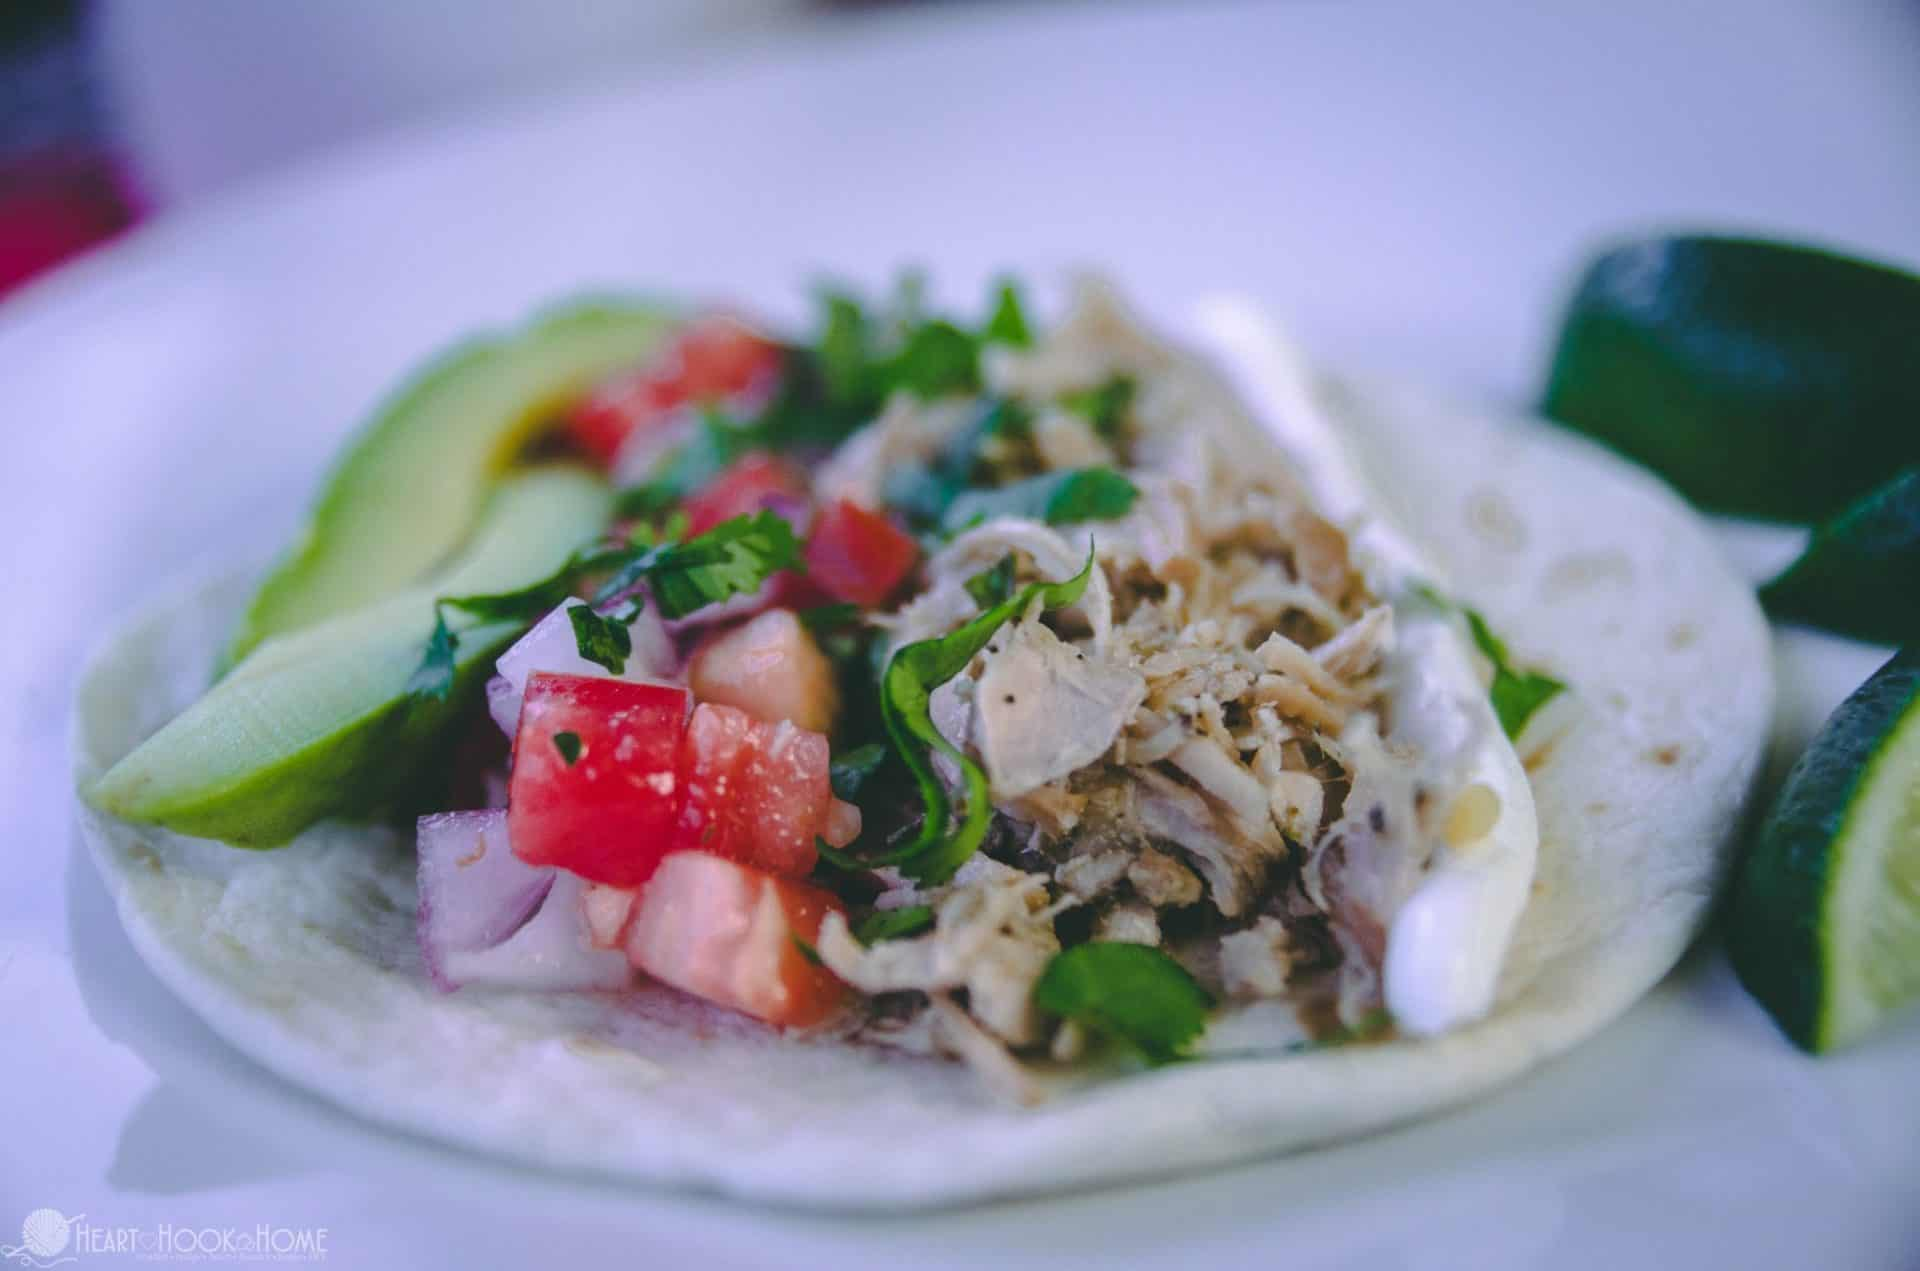 Street tacos with shredded pork, sour cream, avocados and pico de gallo